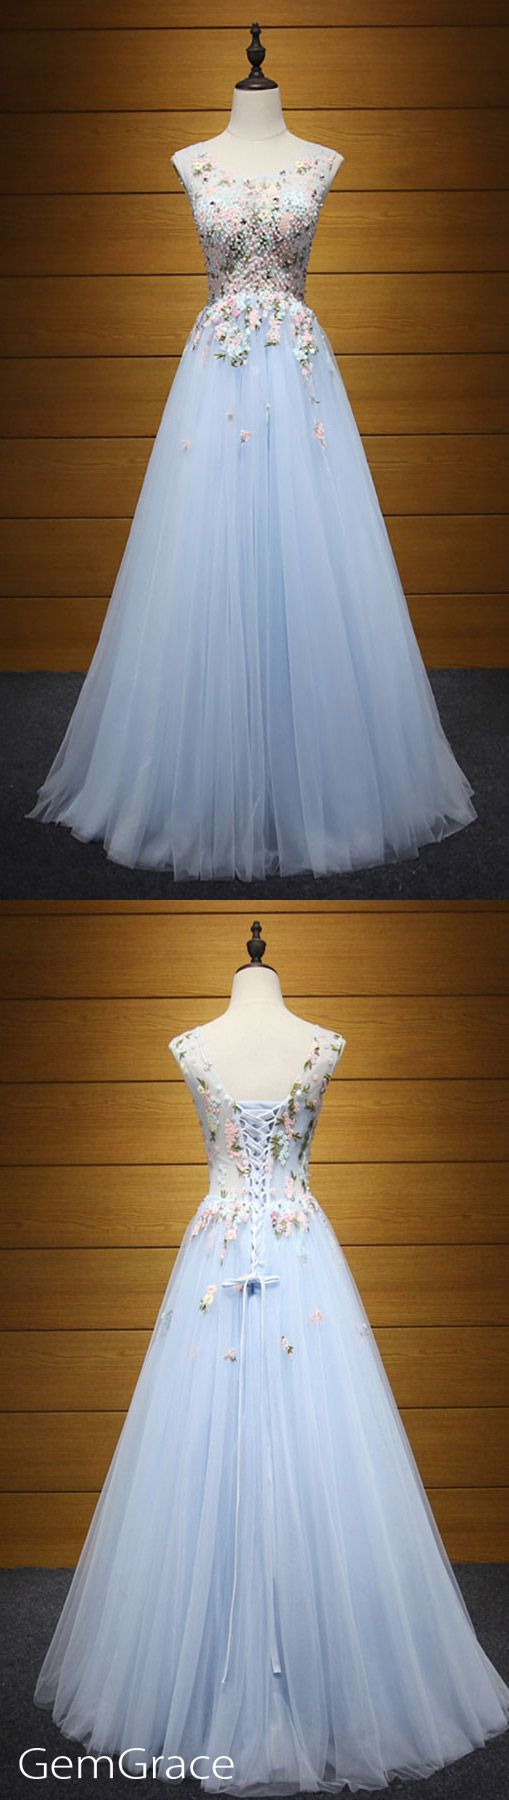 Beautiful floral prom dress blue tulle beaded floor length style